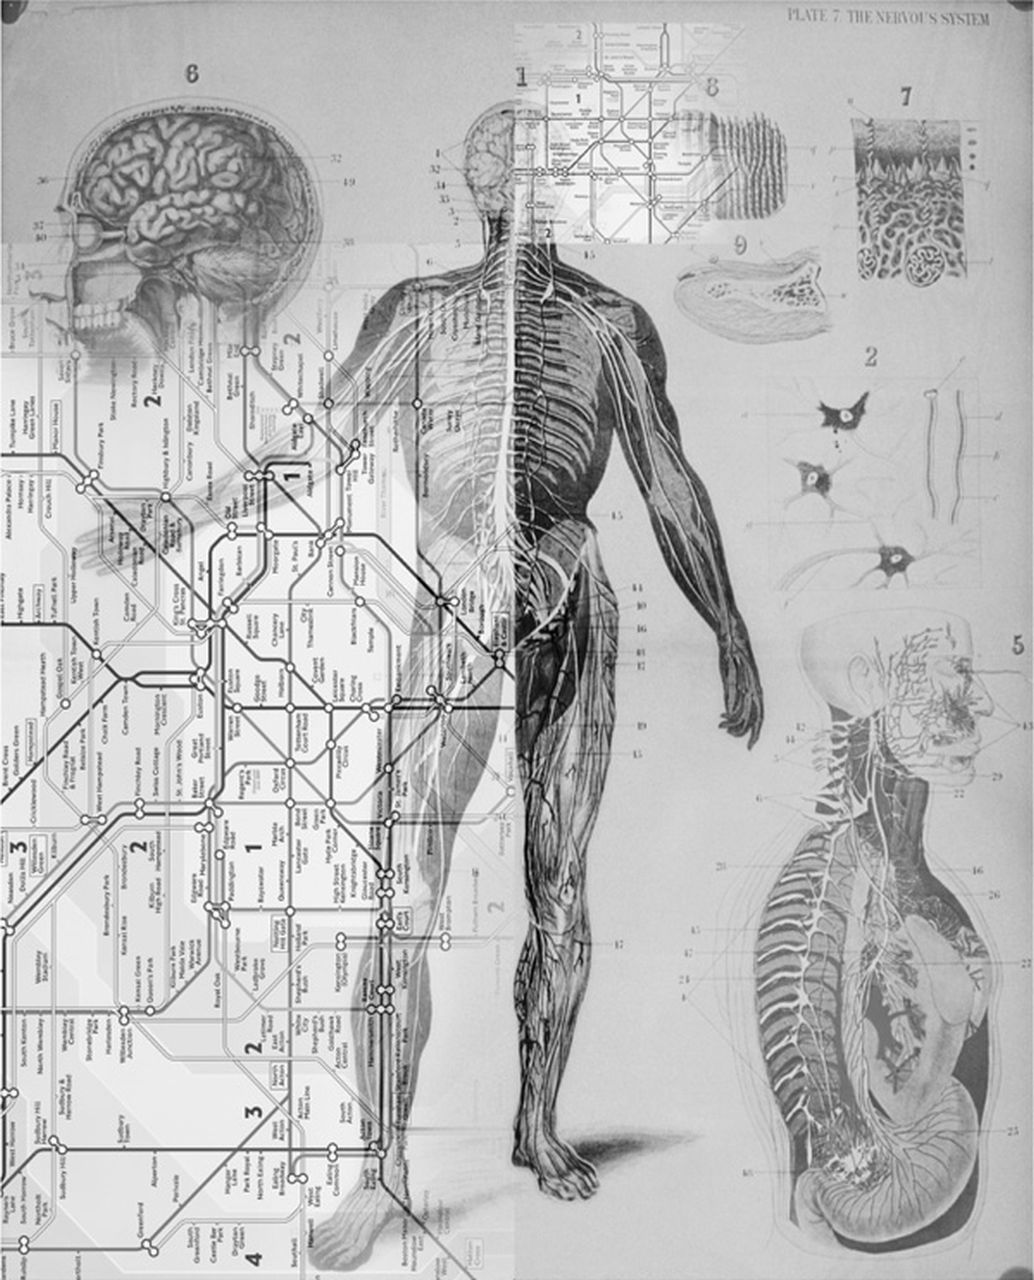 A Focus On: The Art and Science of Clinical Neurology - Oxford Medicine